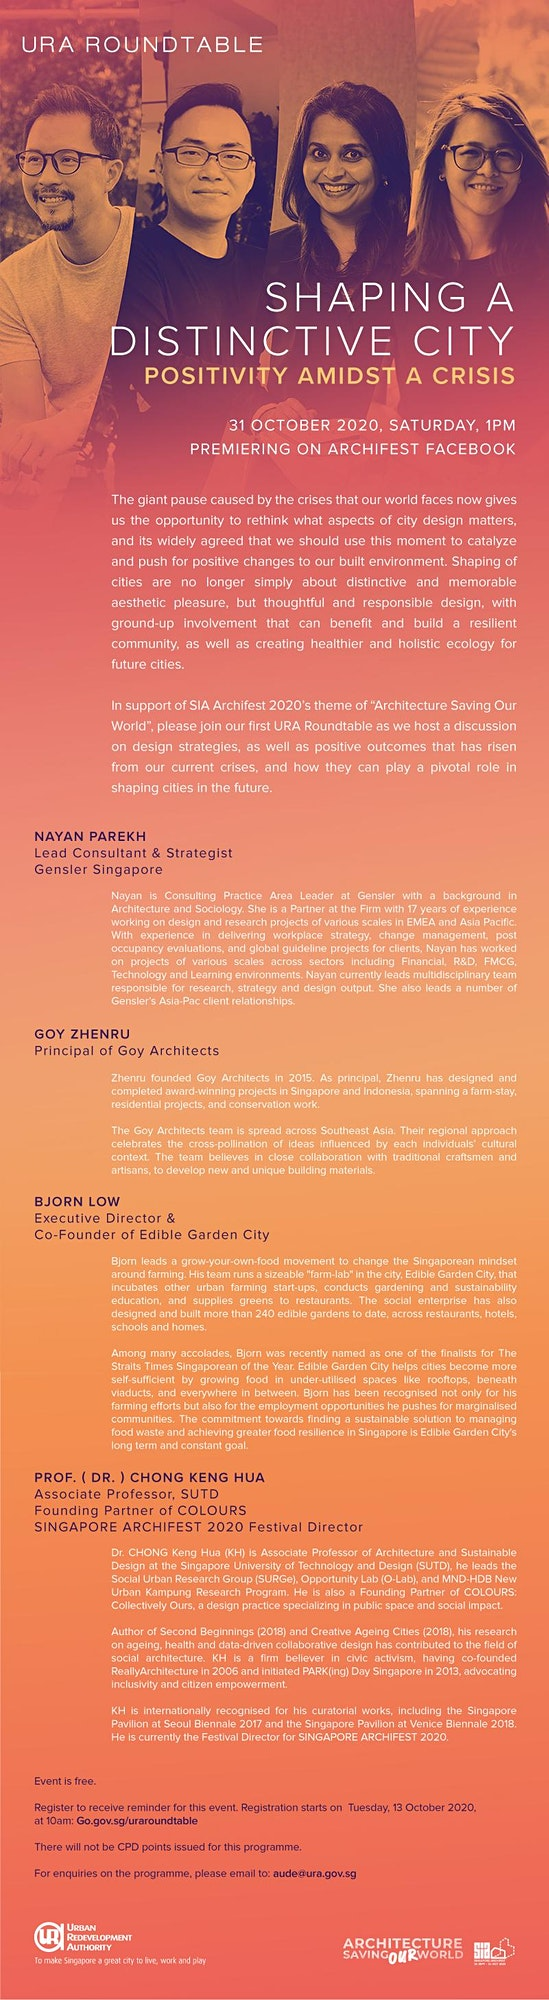 URA ROUNDTABLE - Shaping a Distinctive City: Positivity Amidst a Crisis image